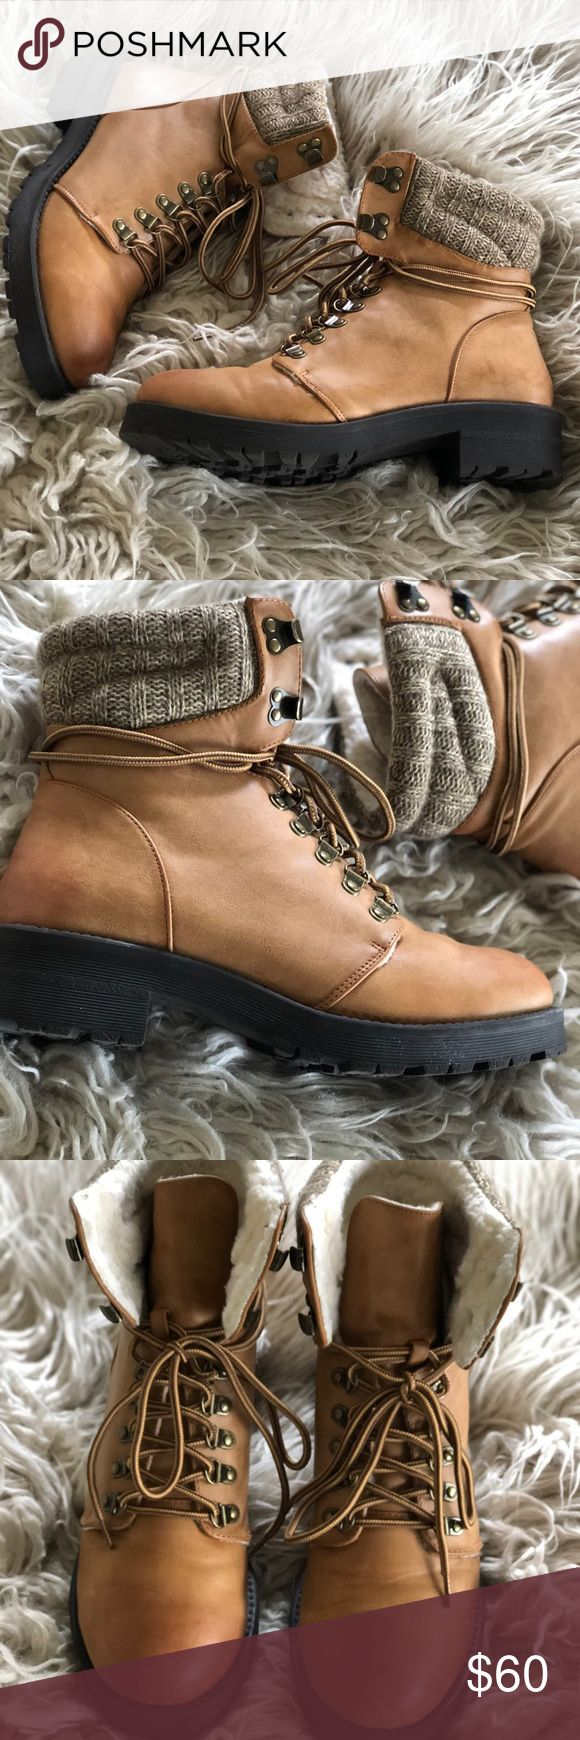 "Maylynn Man Made Winter Boot -worn once -in excellent condition -vegan boots -man made materials  -tan colored  -10% off bundles of 2+ items -model: 5'7"" & 140 lbs MIA Shoes Lace Up Boots"